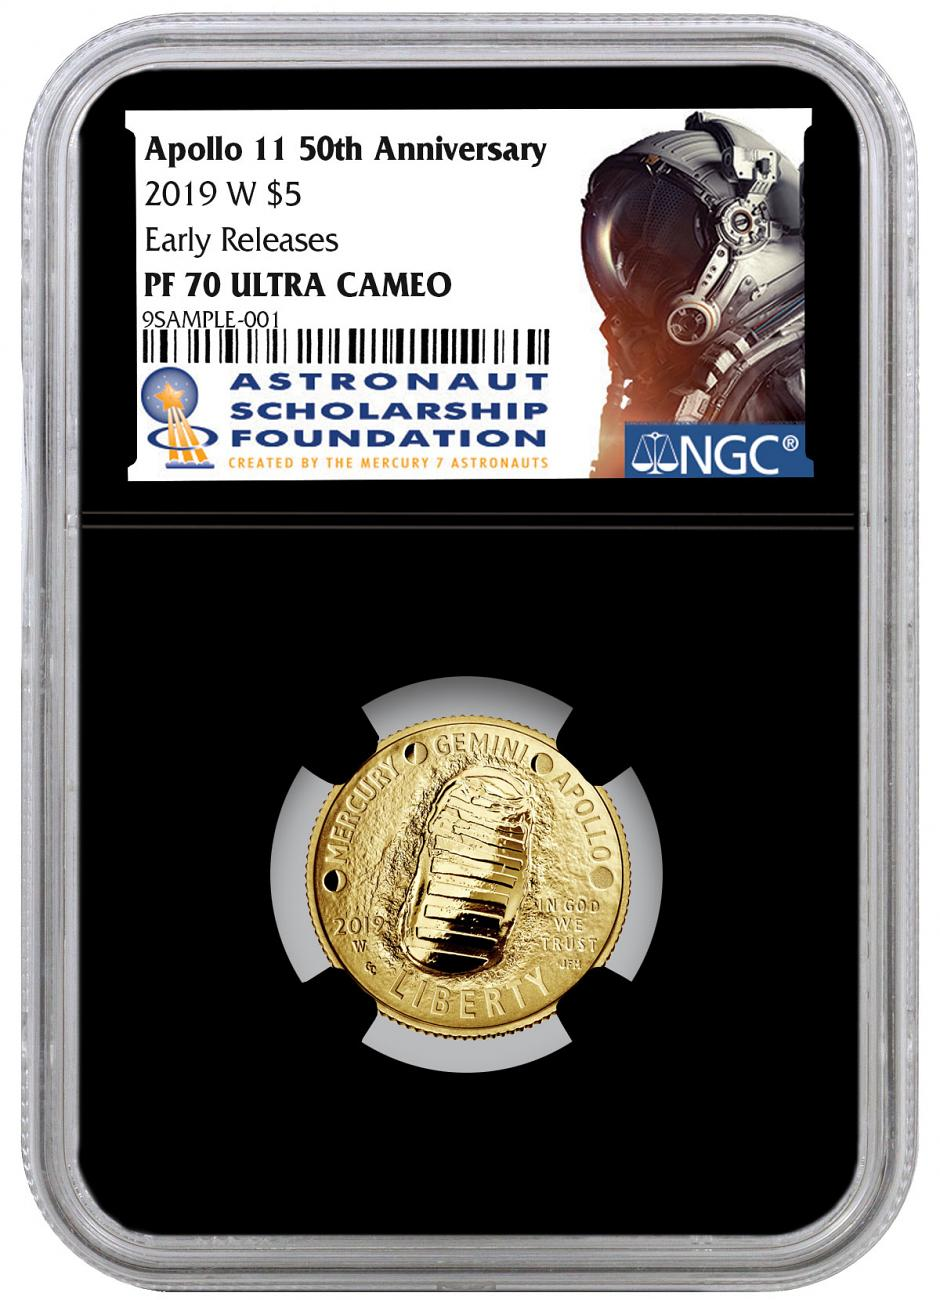 2019-W Apollo 11 50th Anniversary $5 Gold Commemorative Proof Coin NGC PF70 ER Black Core Holder Astronaut Scholarship Foundation Label